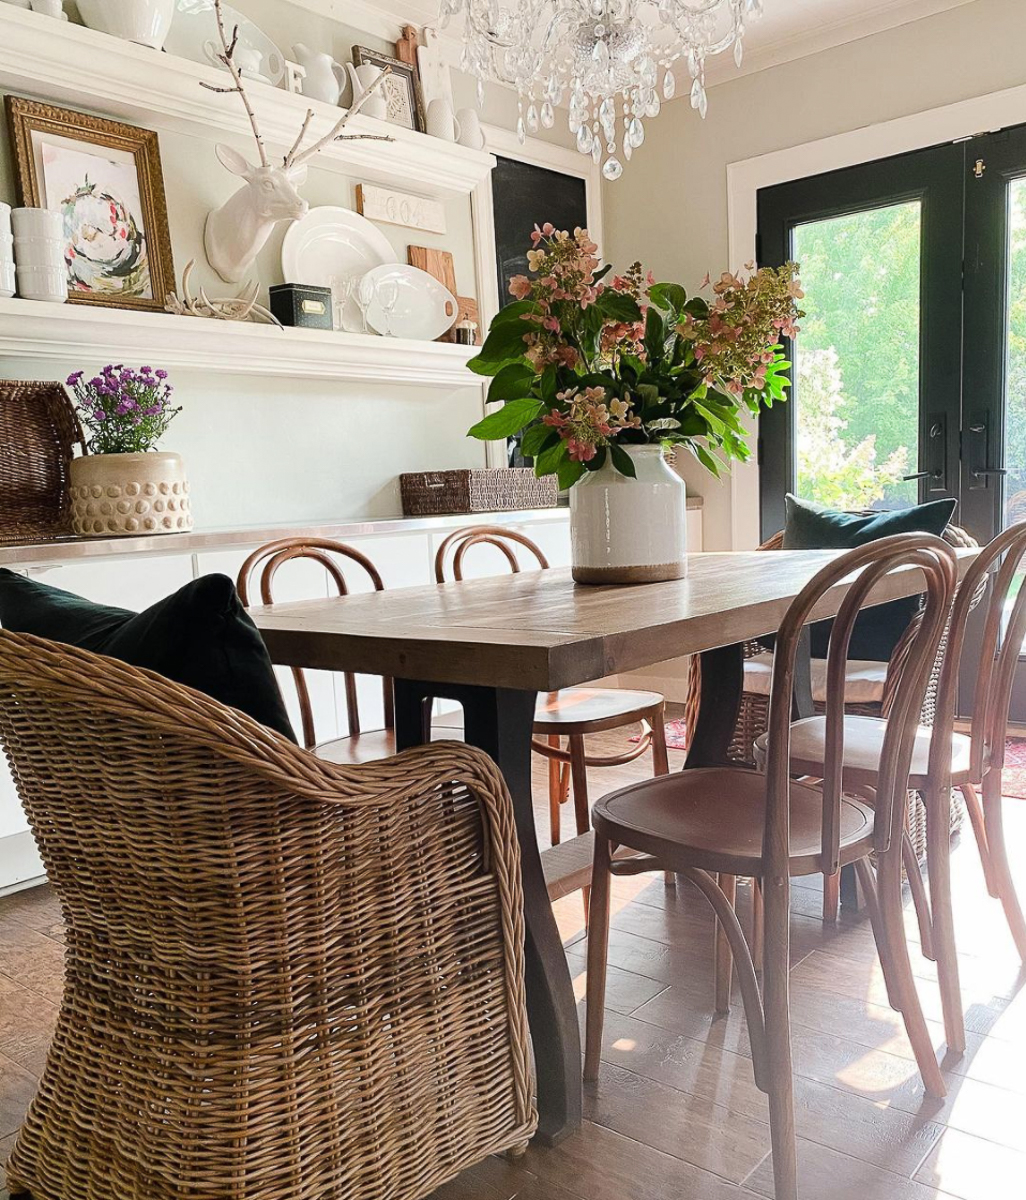 DIY table with bentwood chairs in this beautiful farmhouse dining room kellyelko.com